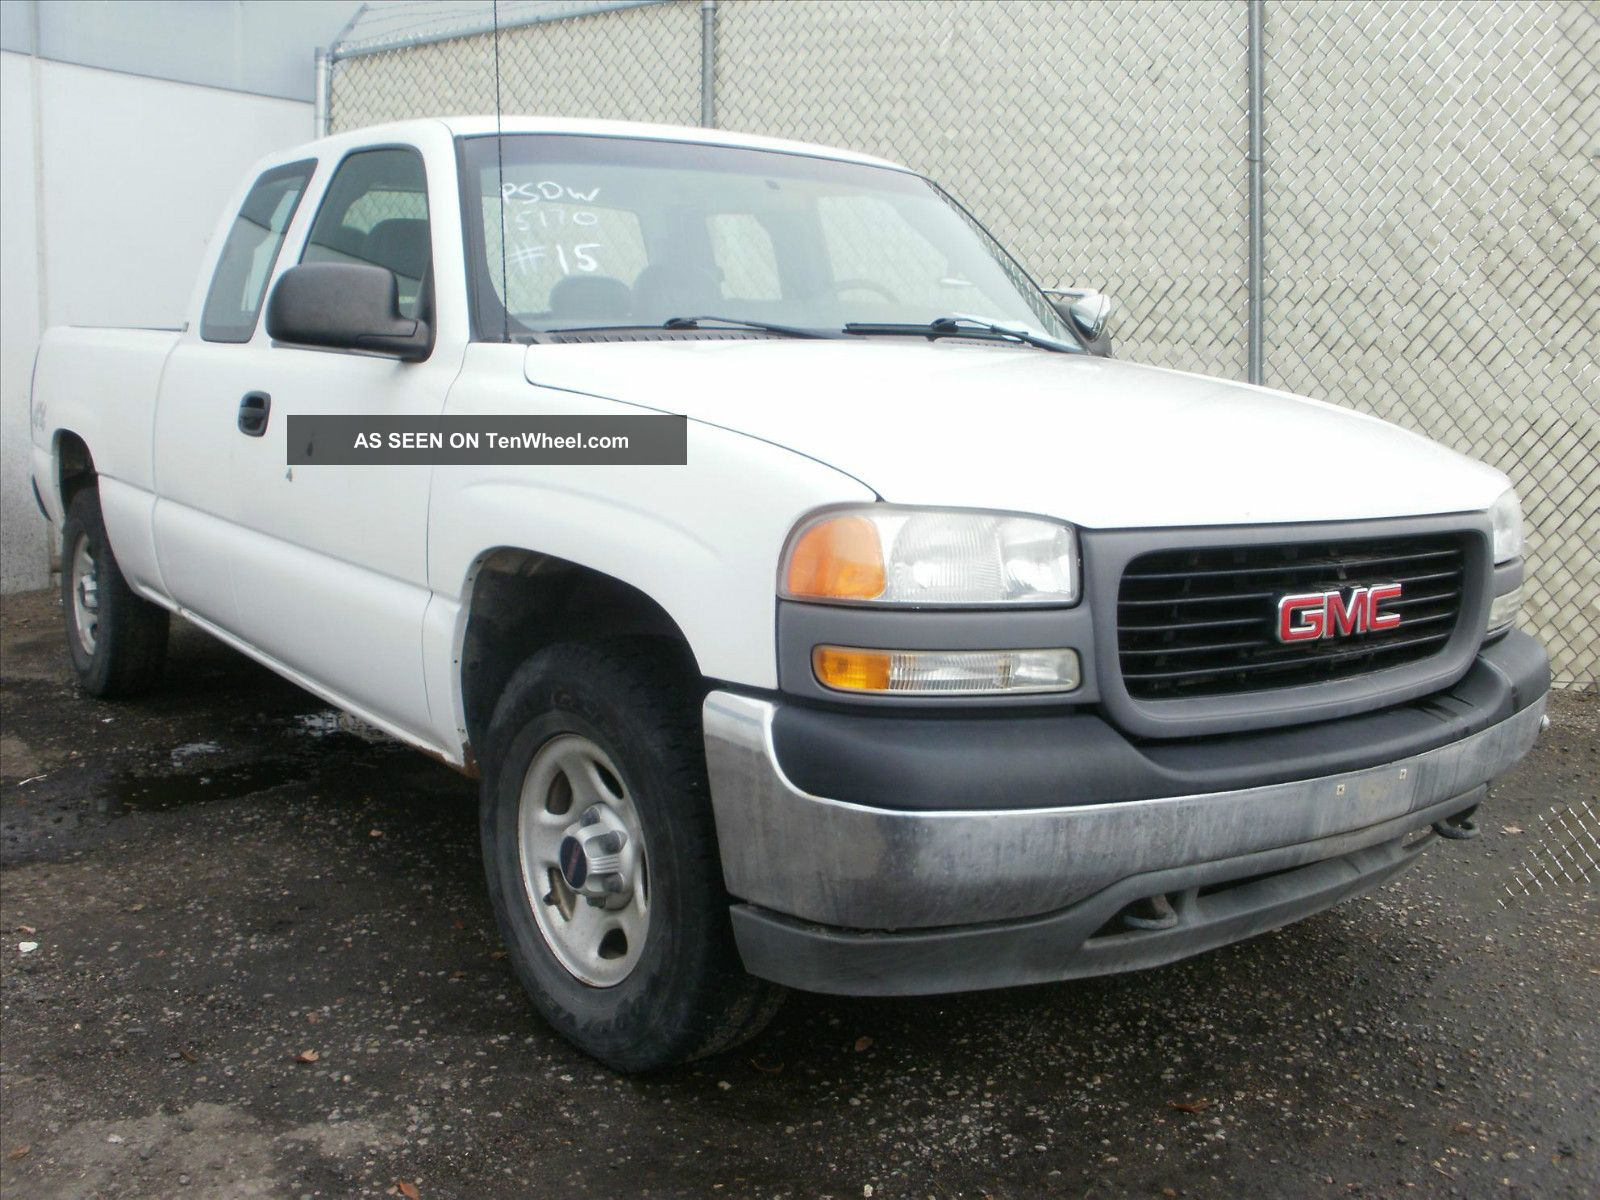 2001 gmc sierra 1500 sl ext cab 4x4 asset 15170. Black Bedroom Furniture Sets. Home Design Ideas